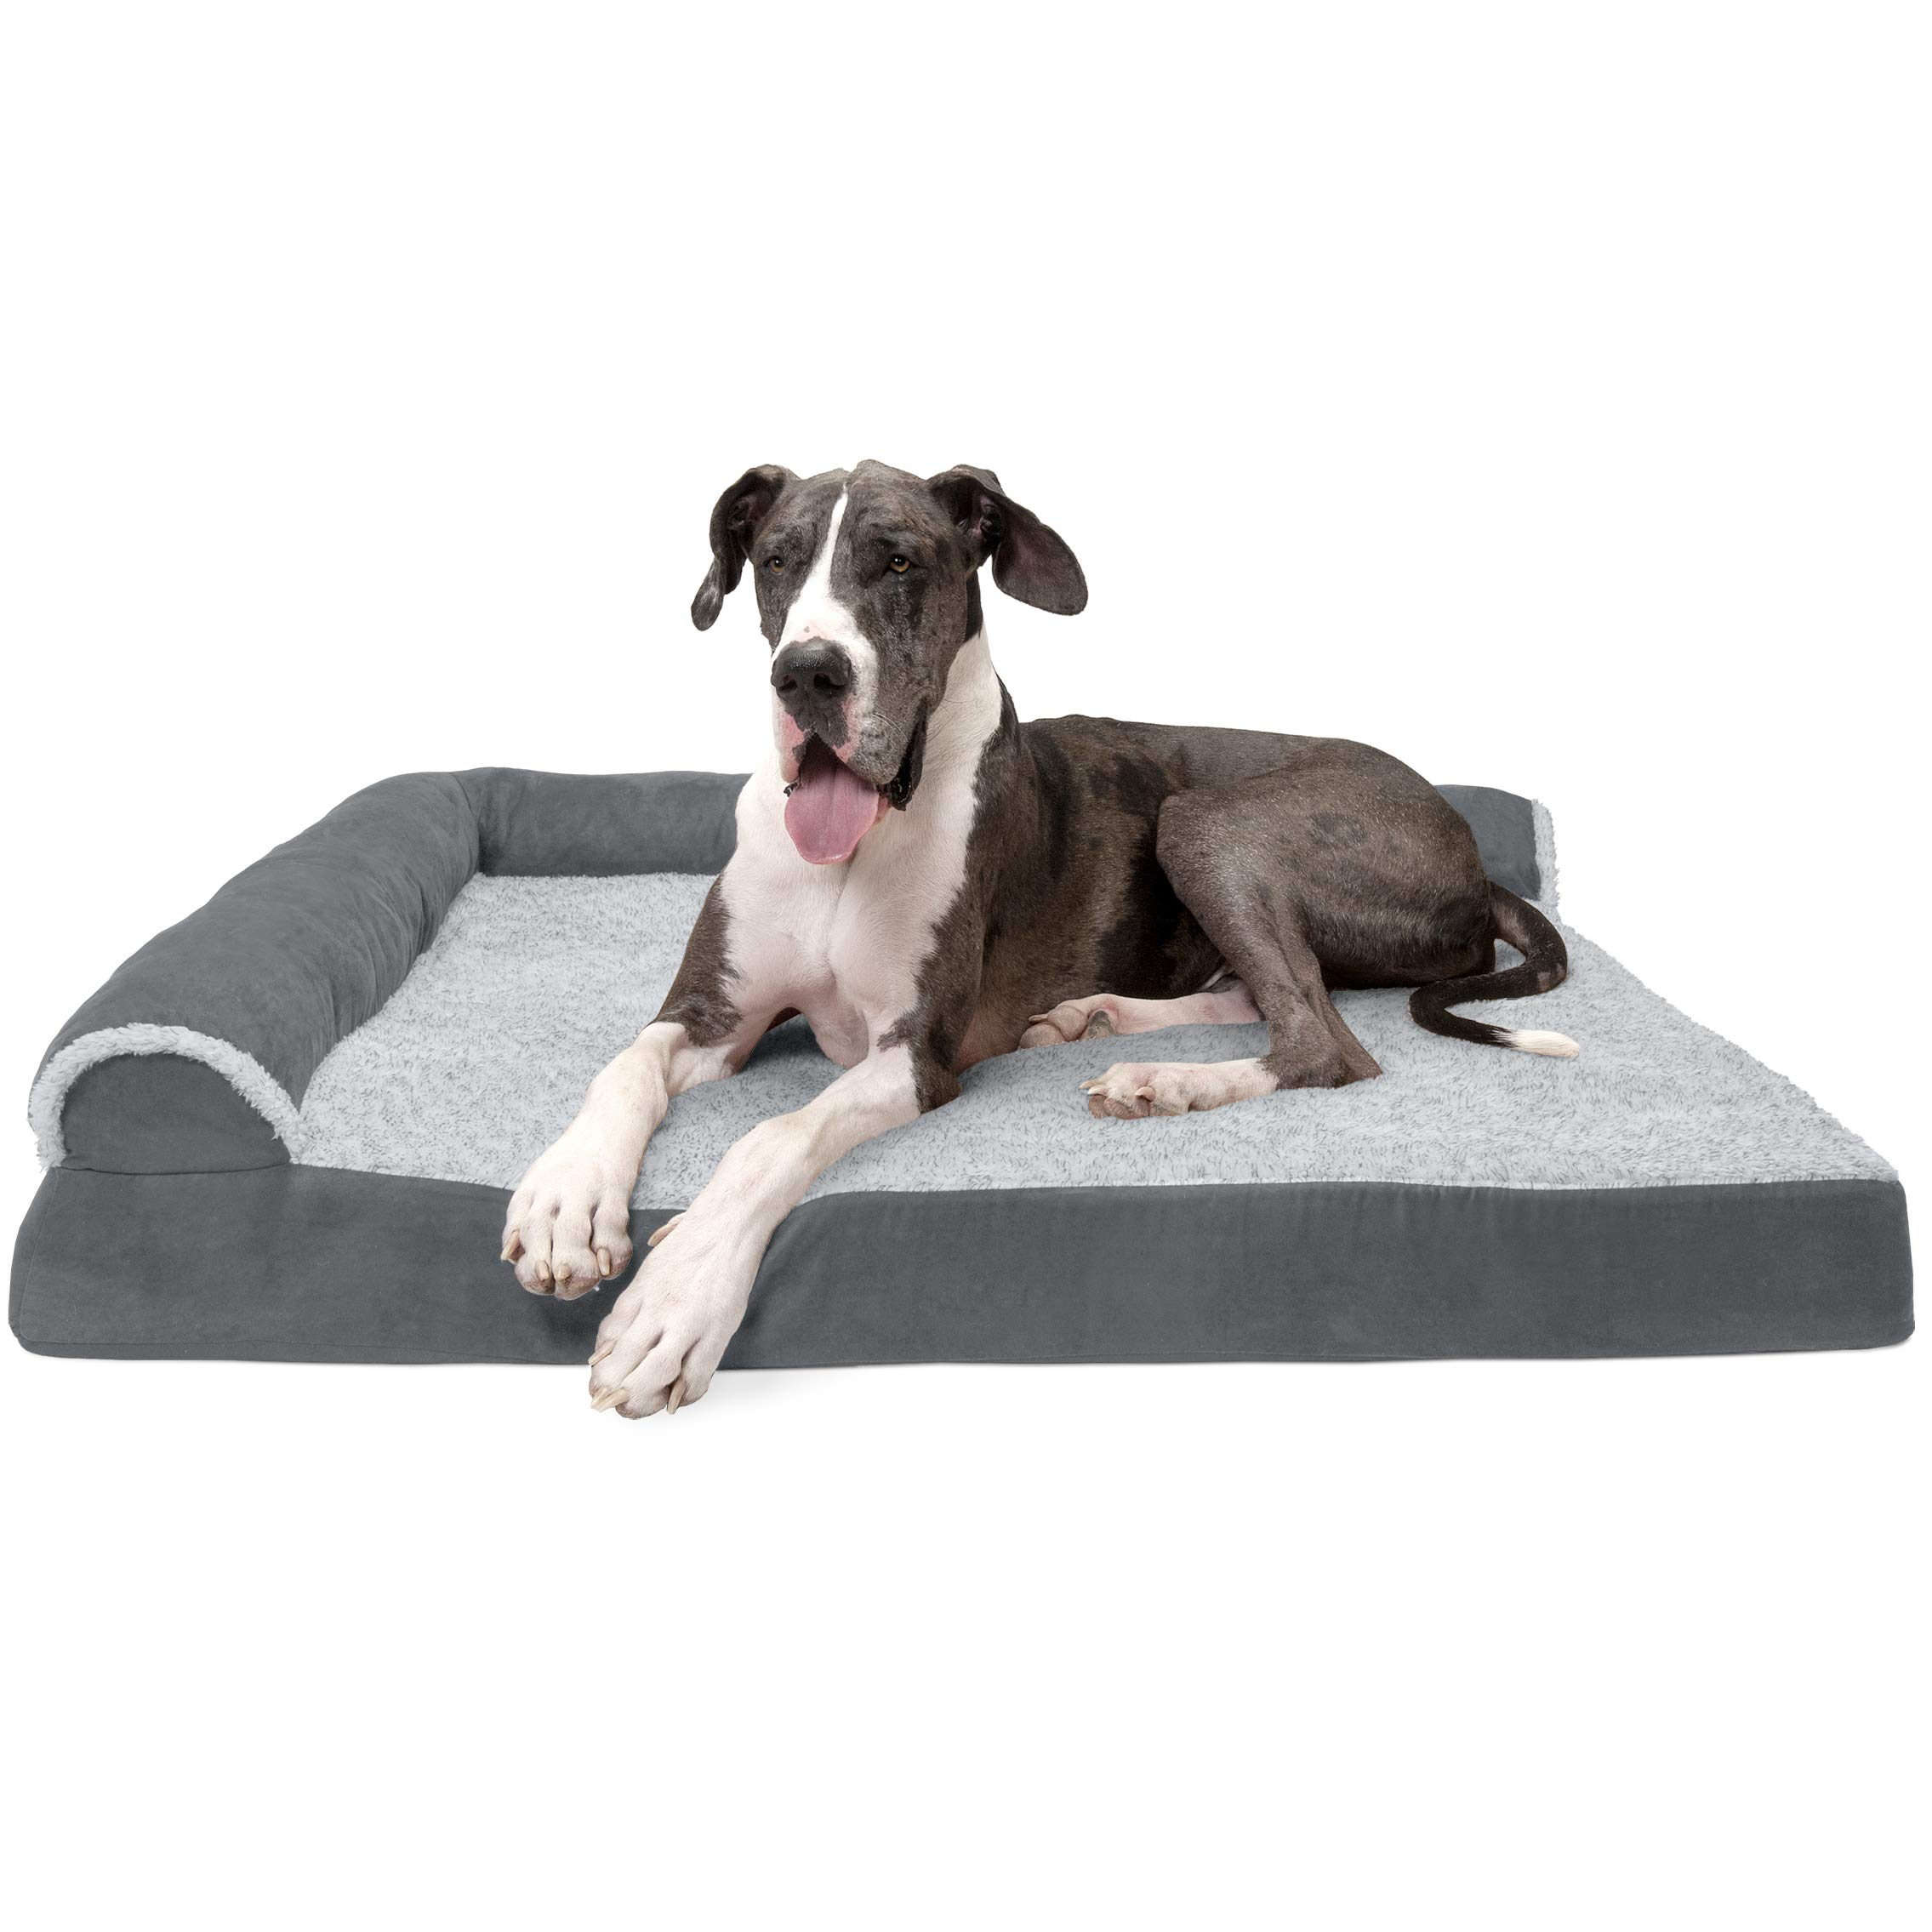 Furhaven Pet Dog Bed   Deluxe Orthopedic Two-Tone Plush Faux Fur & Suede L Shaped Chaise Lounge Living Room Corner Couch Pet Bed w/ Removable Cover for Dogs & Cats, Stone Gray, Jumbo Plus by Furhaven